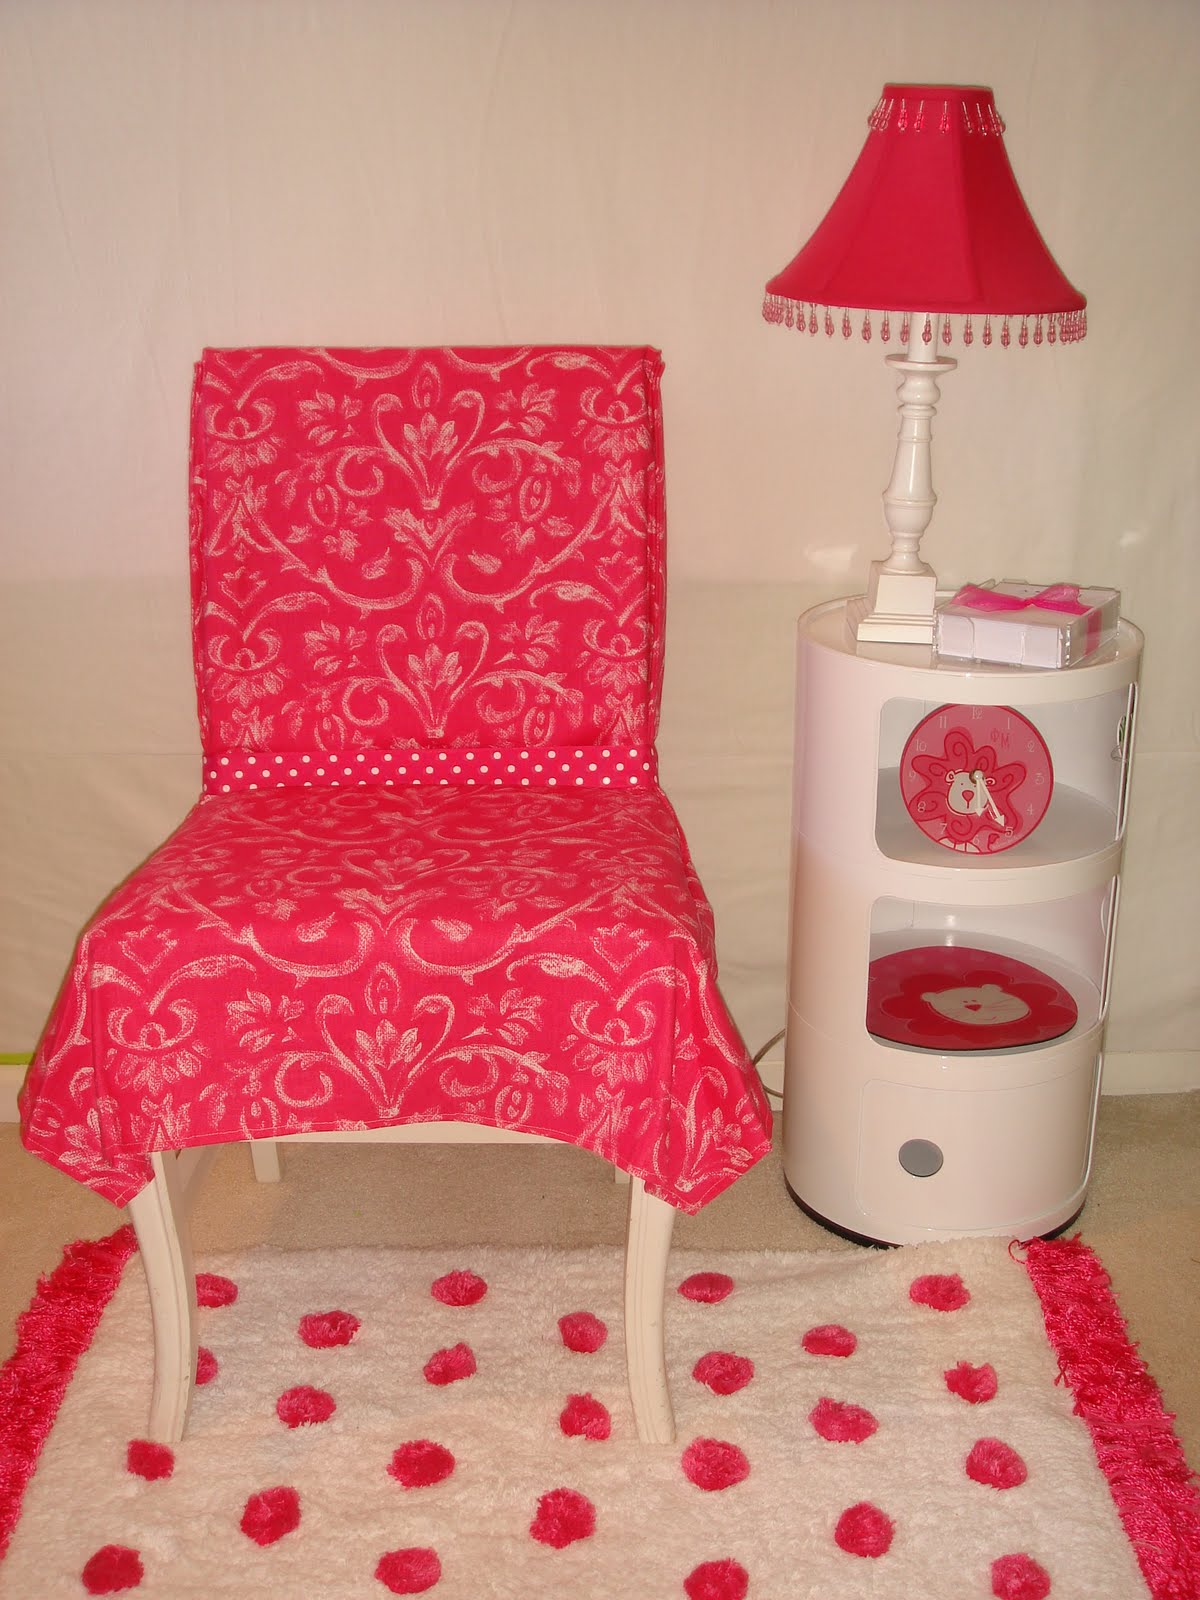 Dorm Room Chairs Chair Slipcovers For Dorm Desk Chairs Decor 2 Ur Door